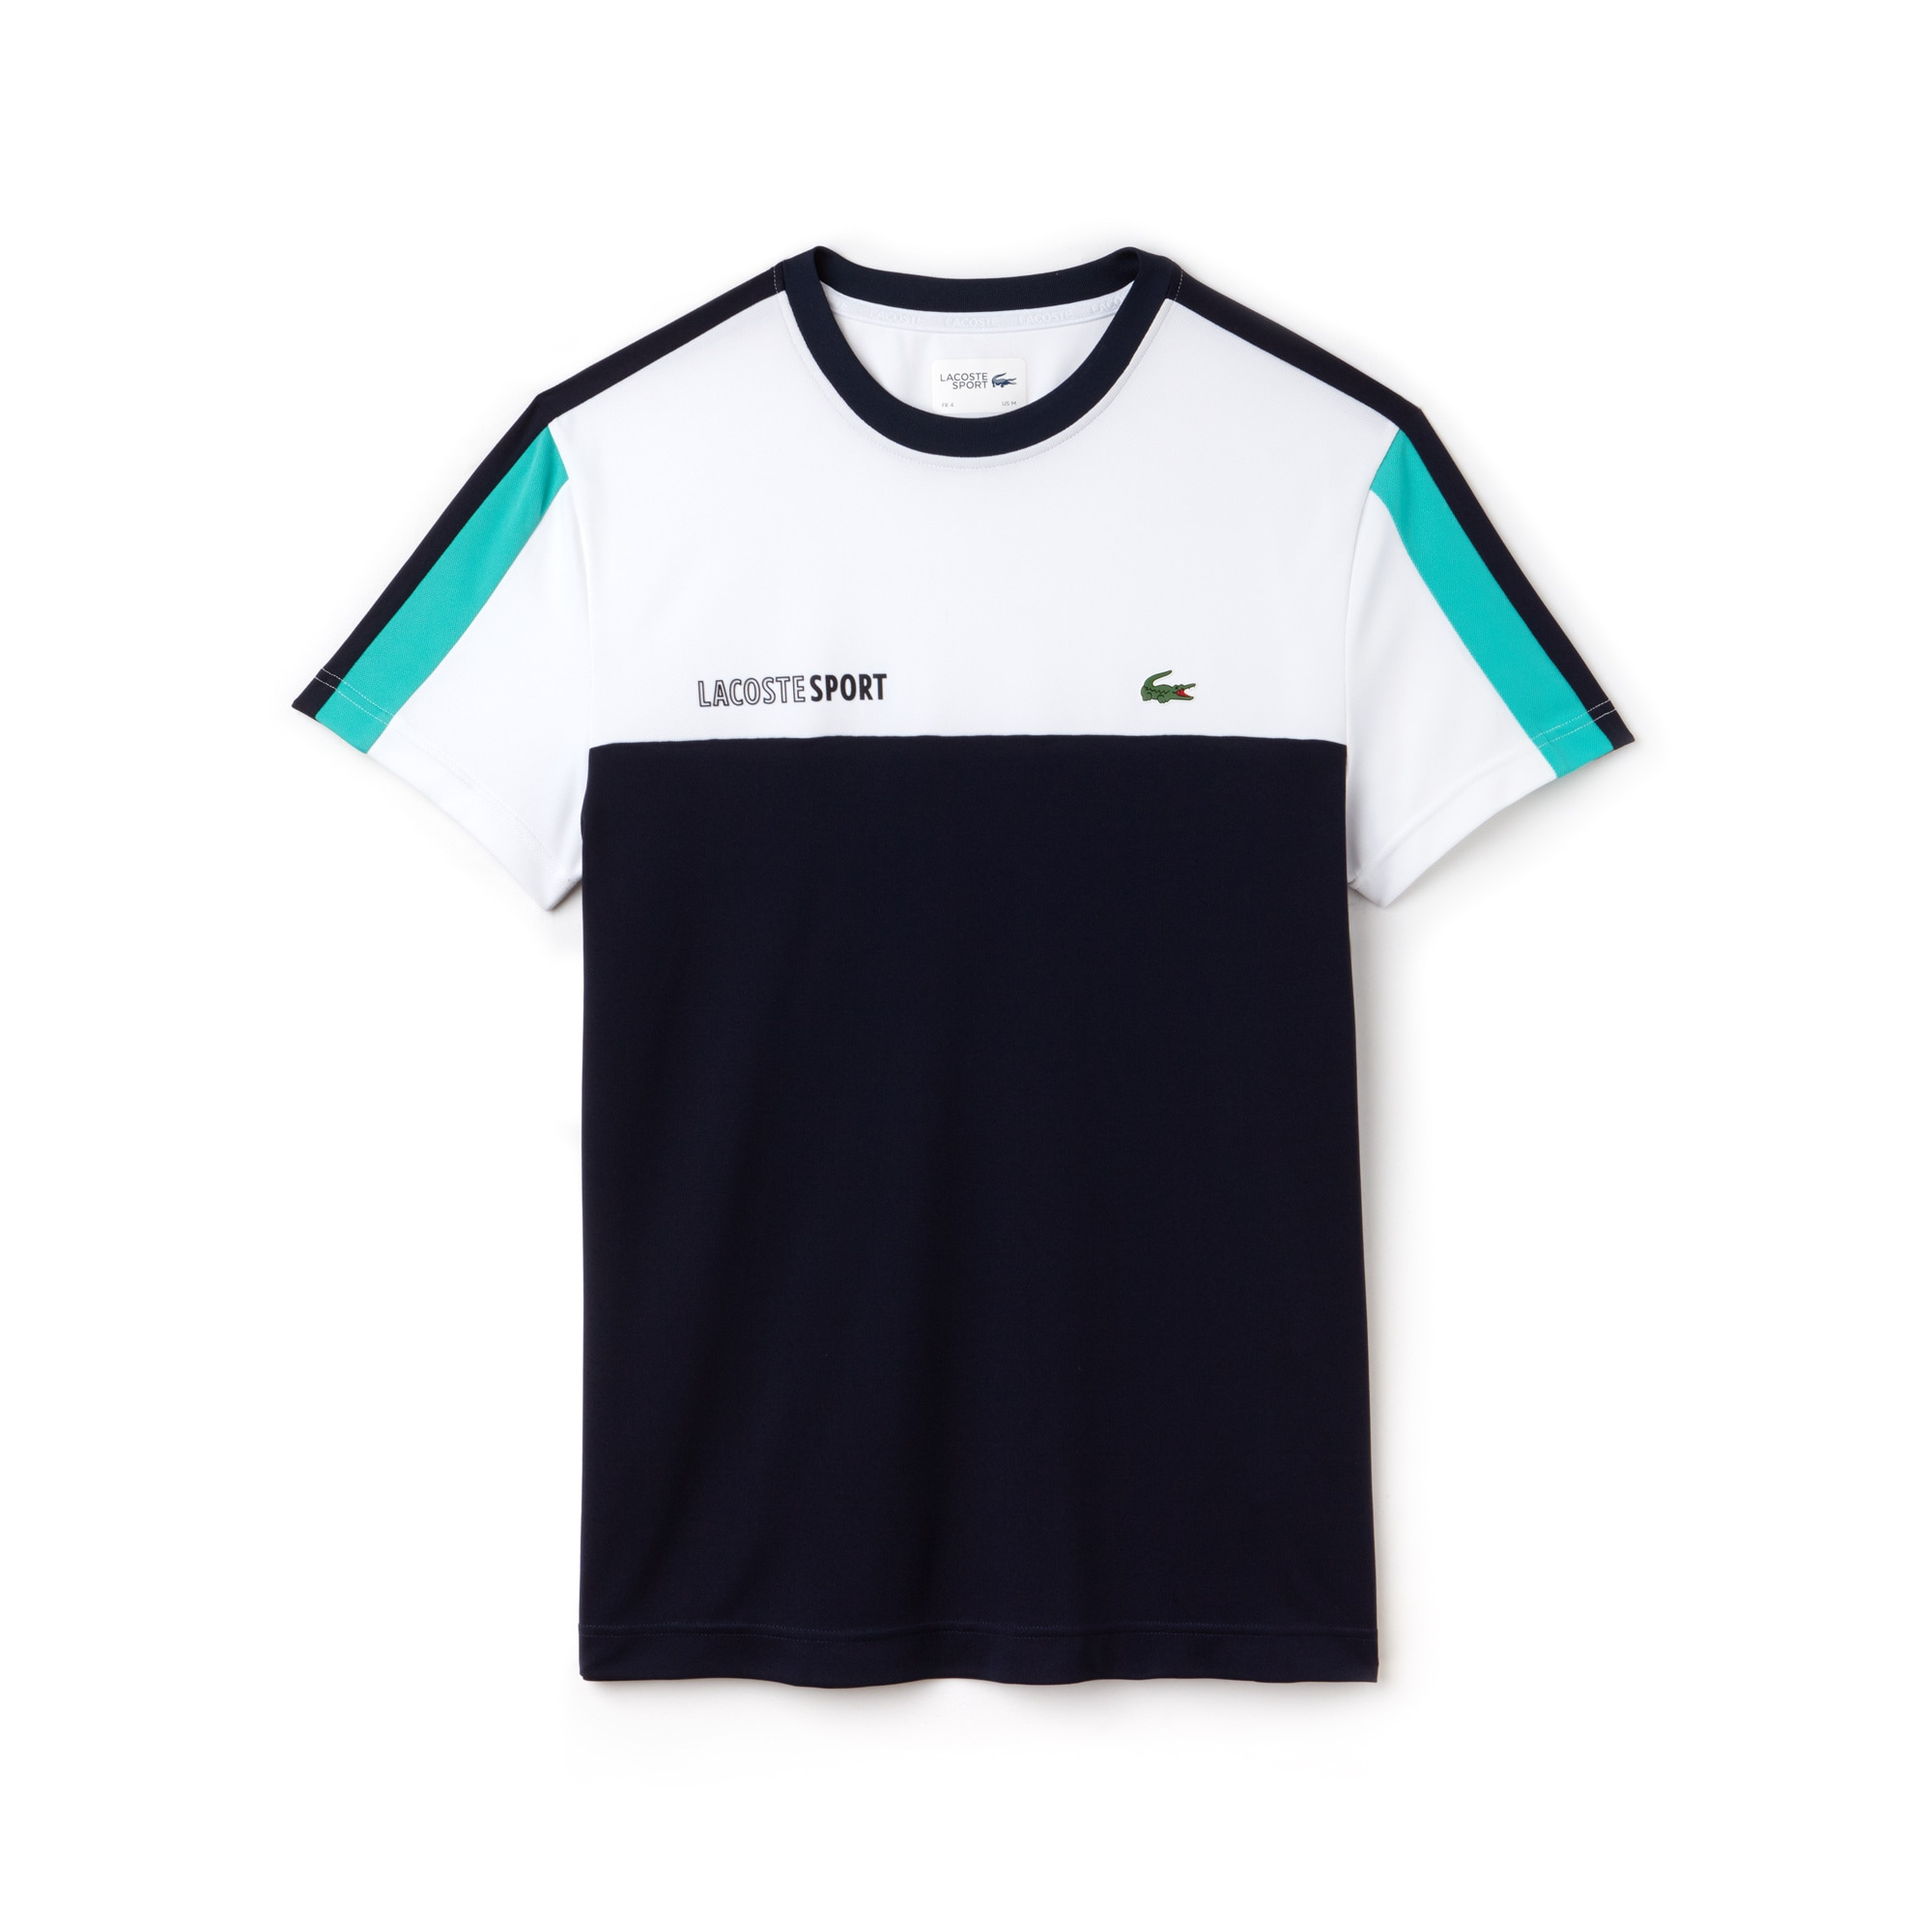 T-shirt col rond Tennis Lacoste SPORT en piqué technique color block